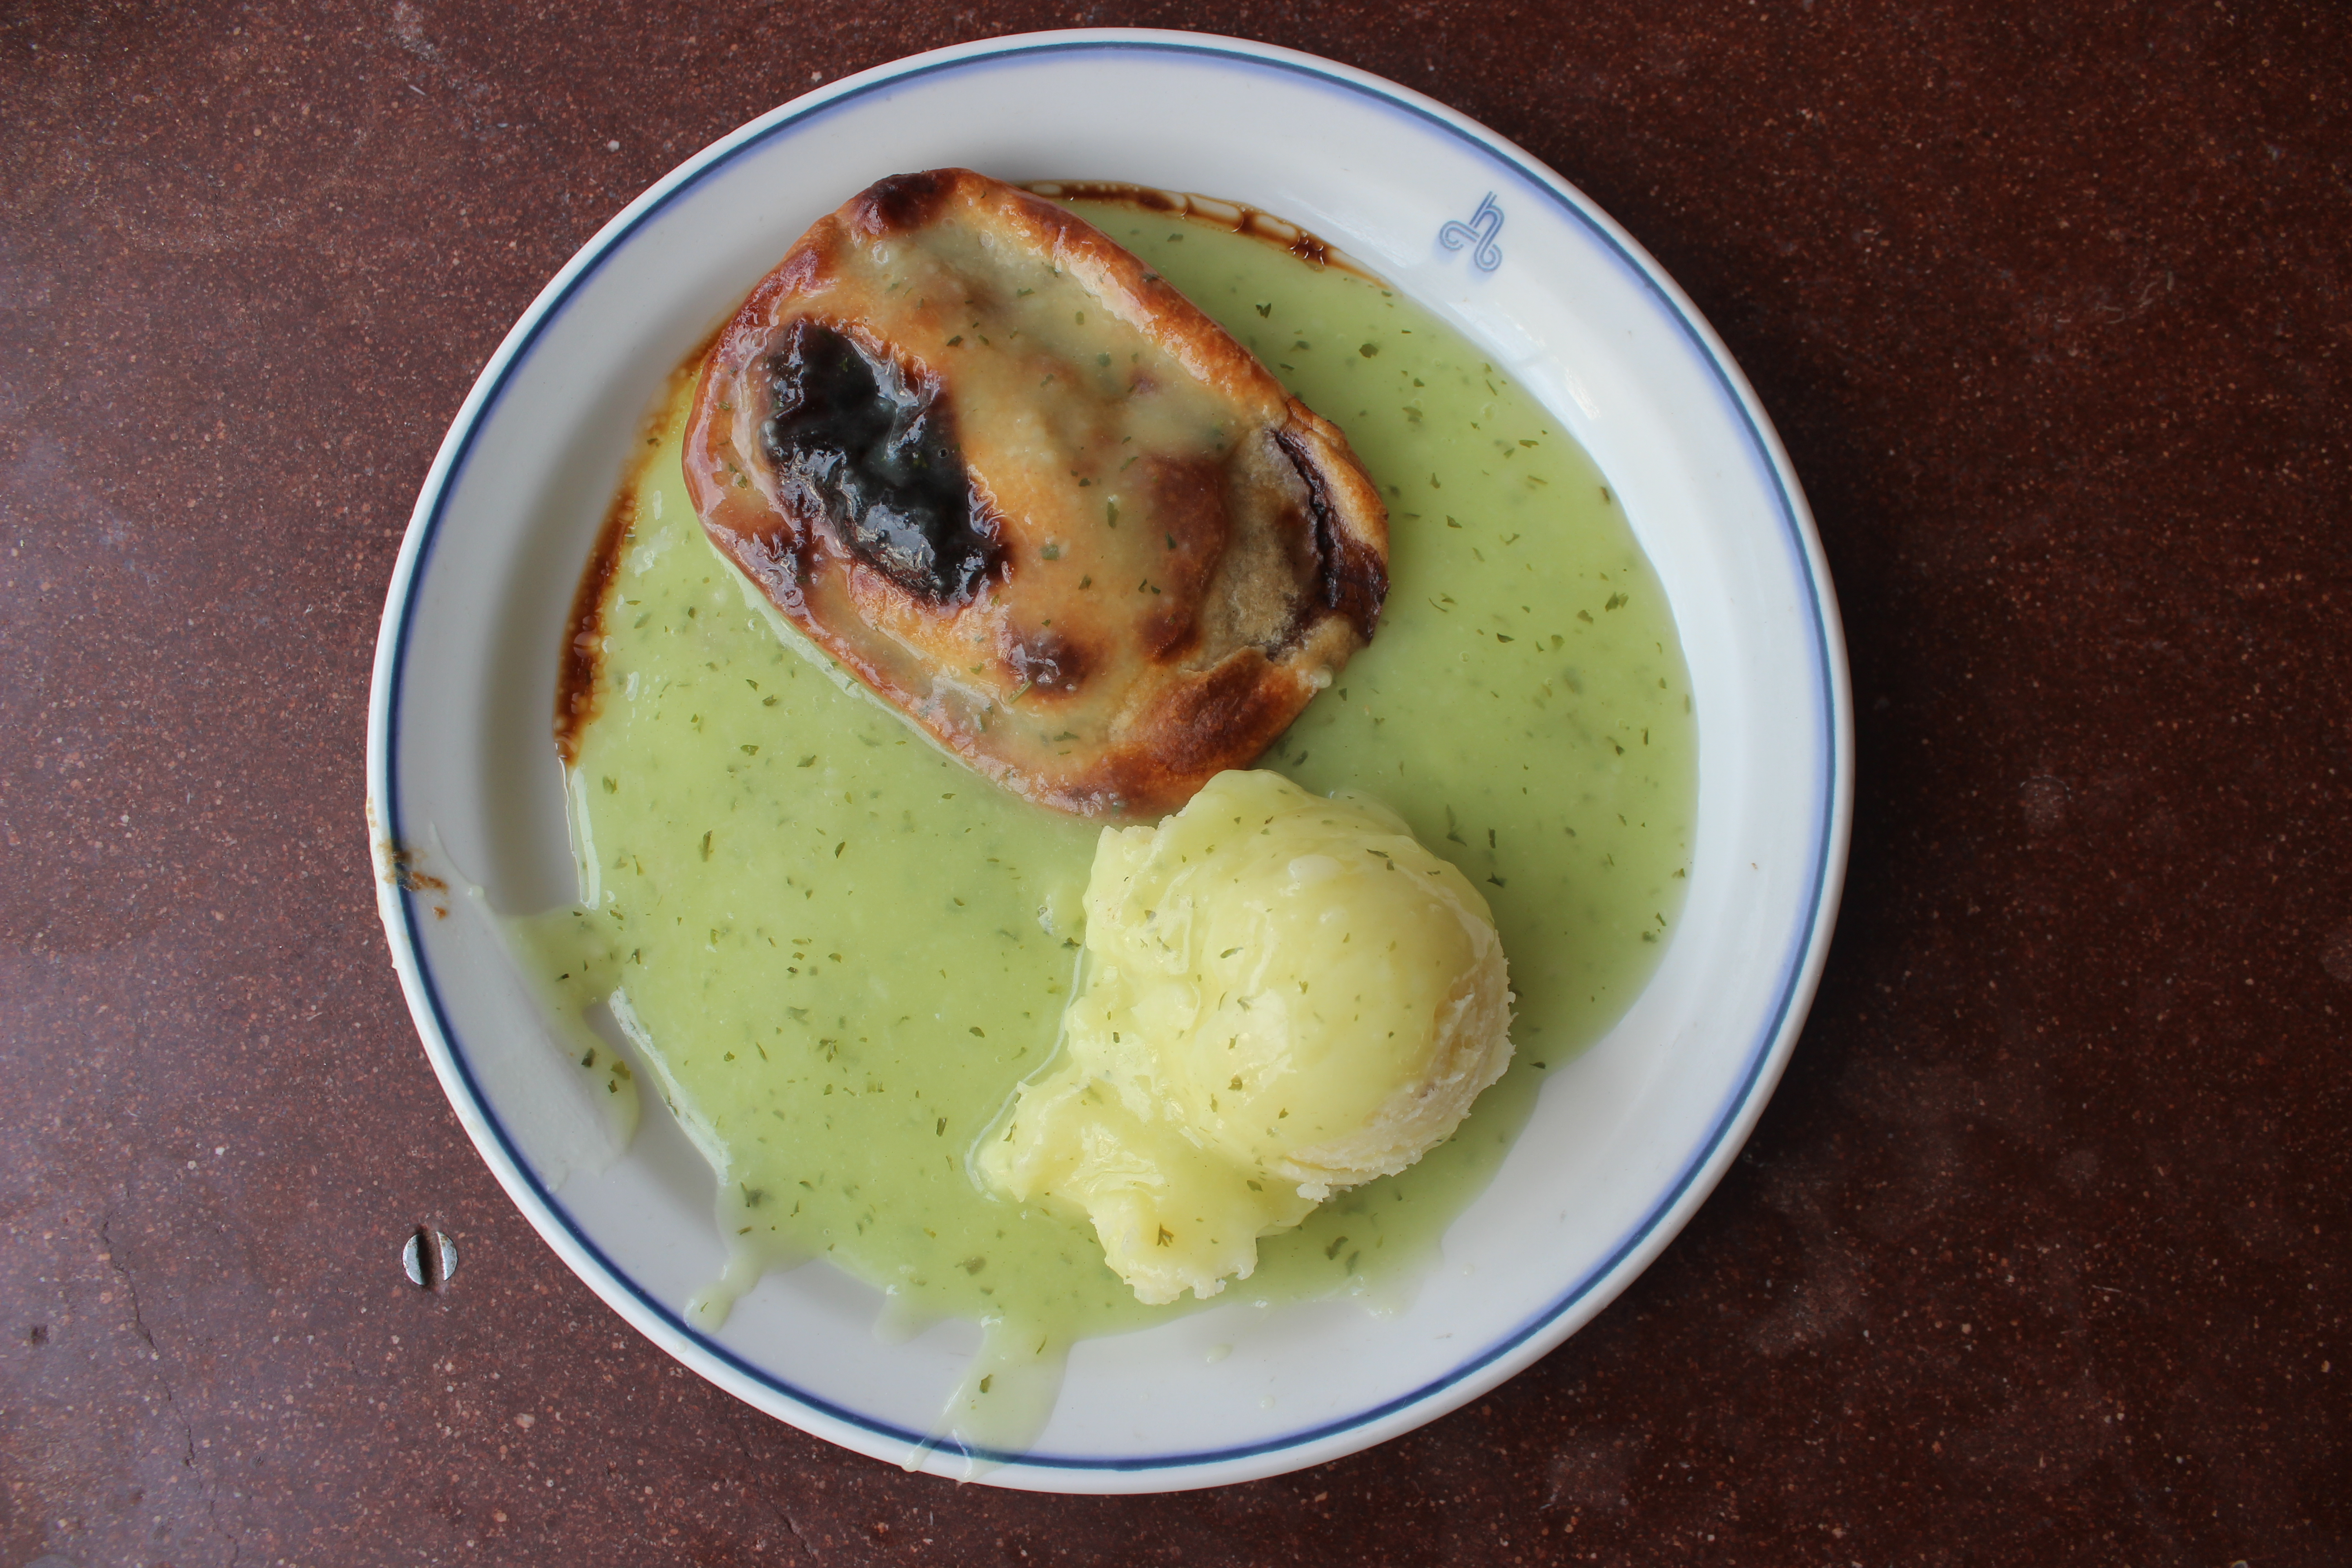 Pie and mash in London: London's best pie and mash shops include Eel and Pie House in Leytonstone